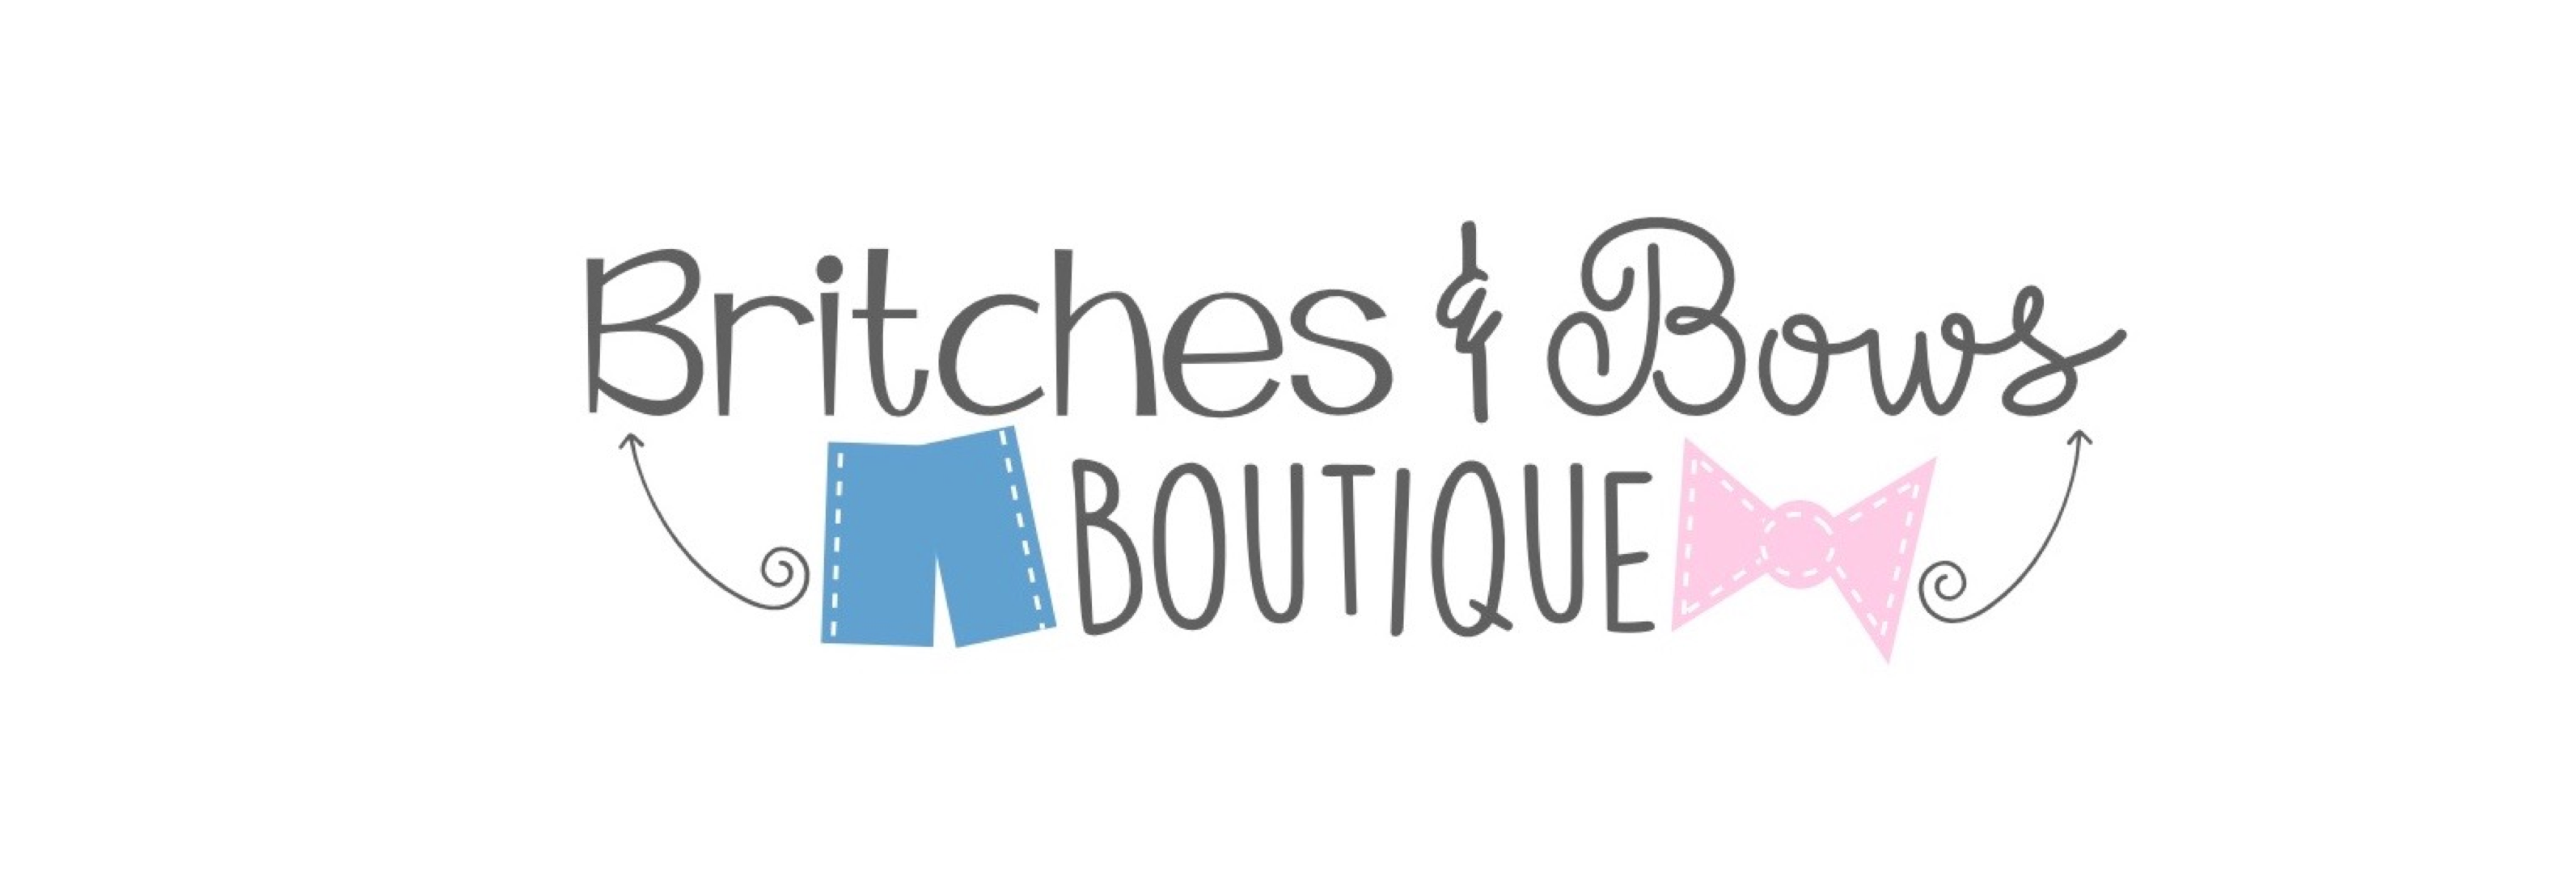 Britches & Bows Boutique LLC